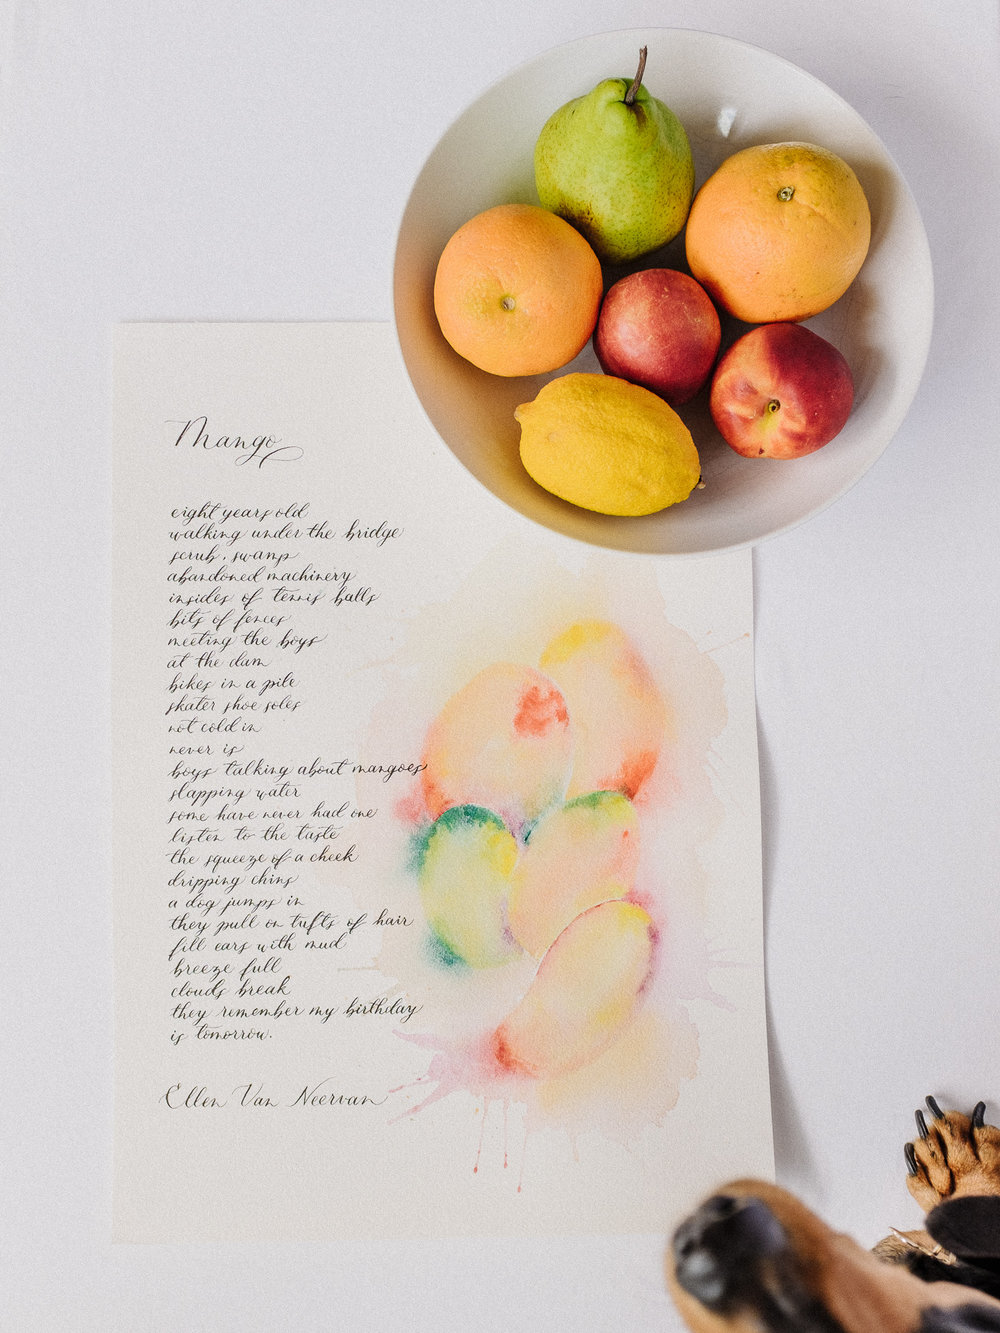 Mango poem custom calligraphy